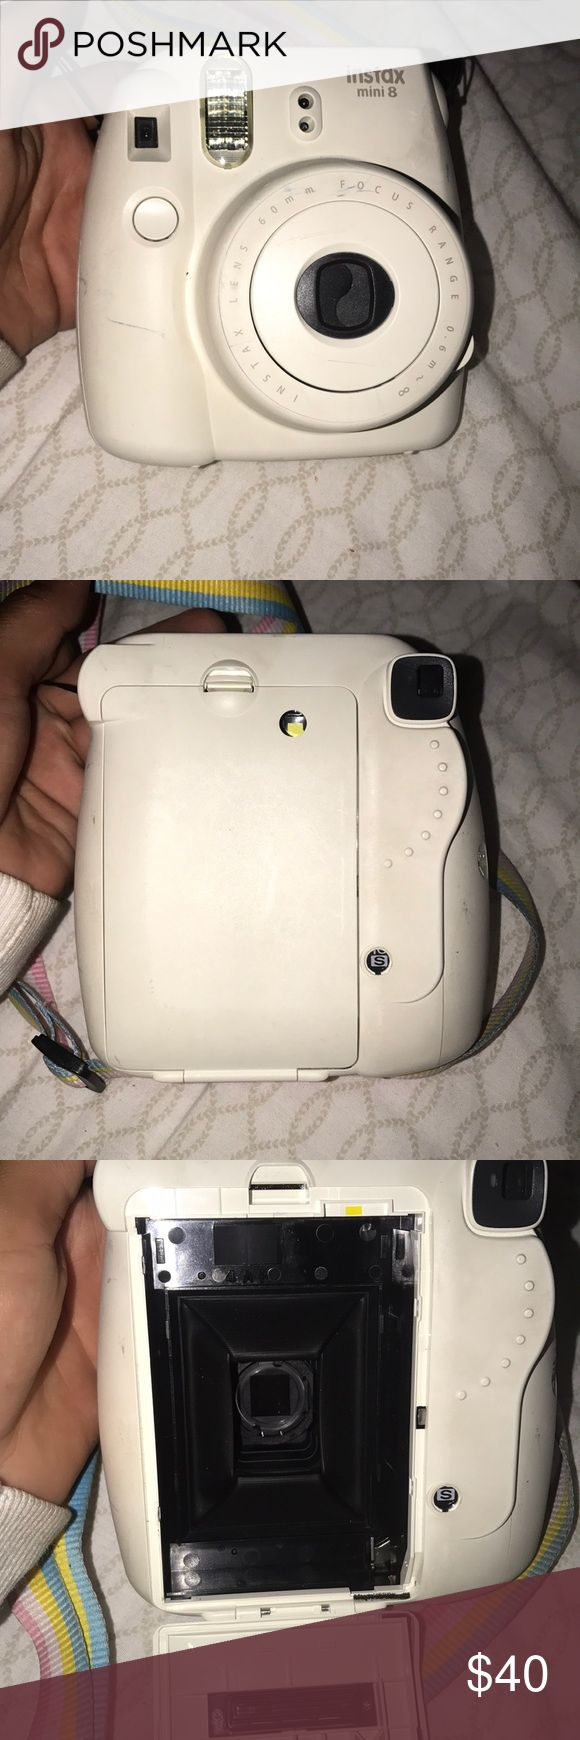 Polaroid camera All white best buy Other